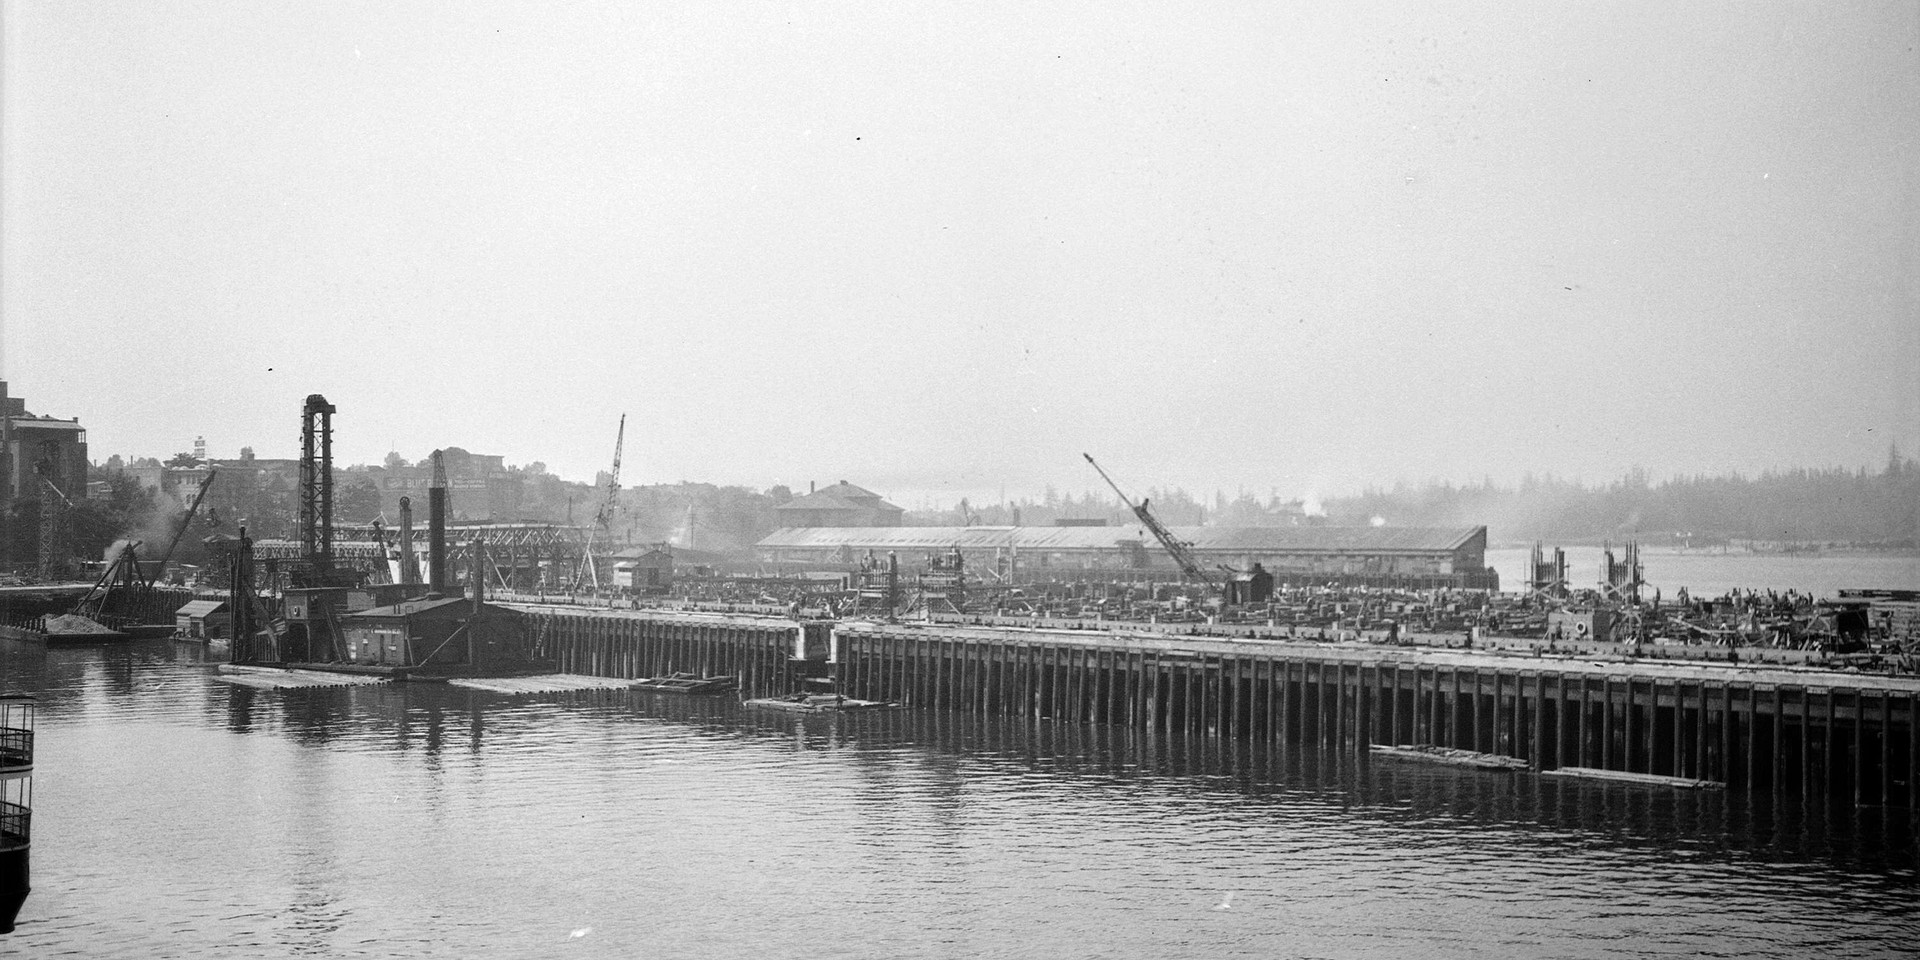 Construction of C.P.R. Pier B-C